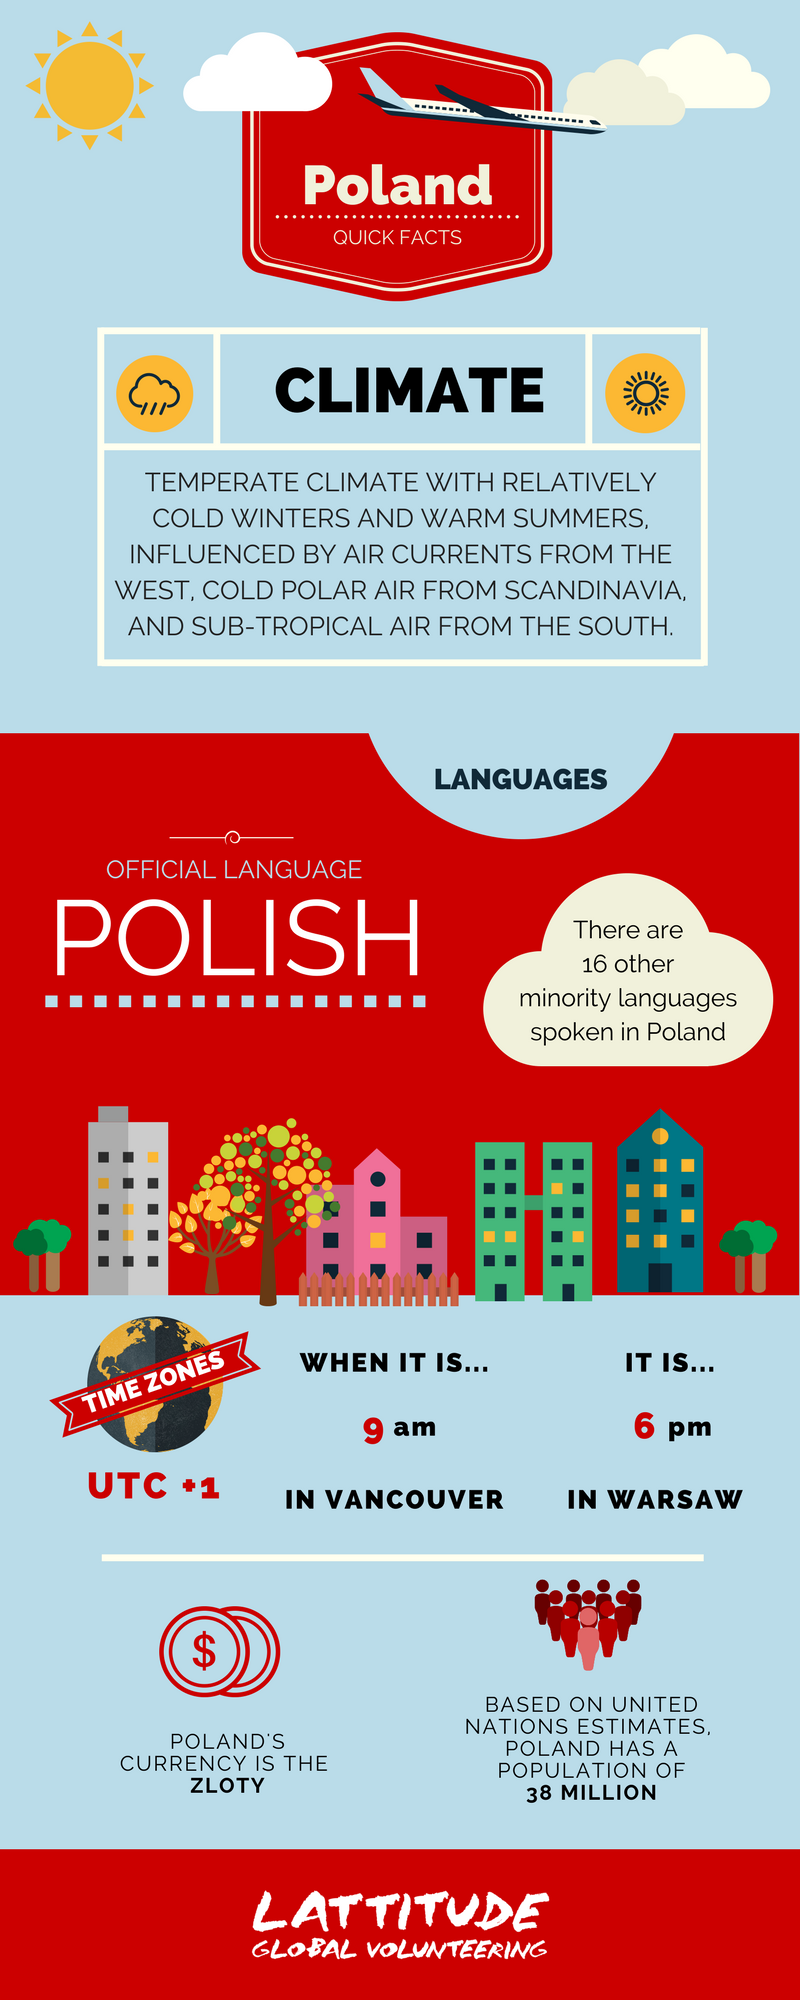 Poland Quick Facts.png